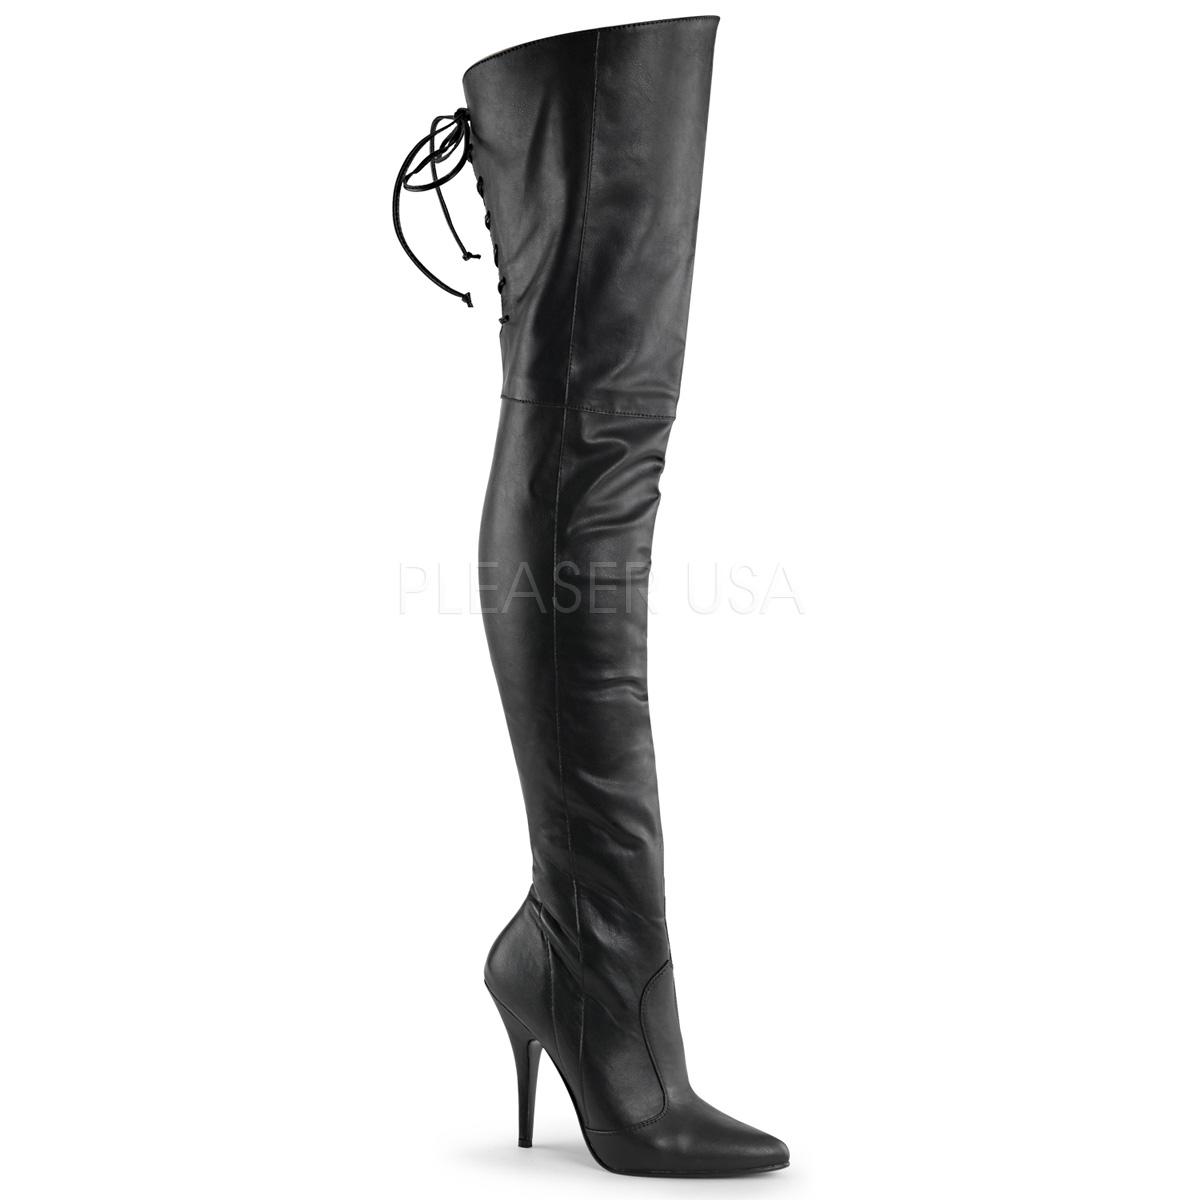 Legend-8899 Thigh High Boots